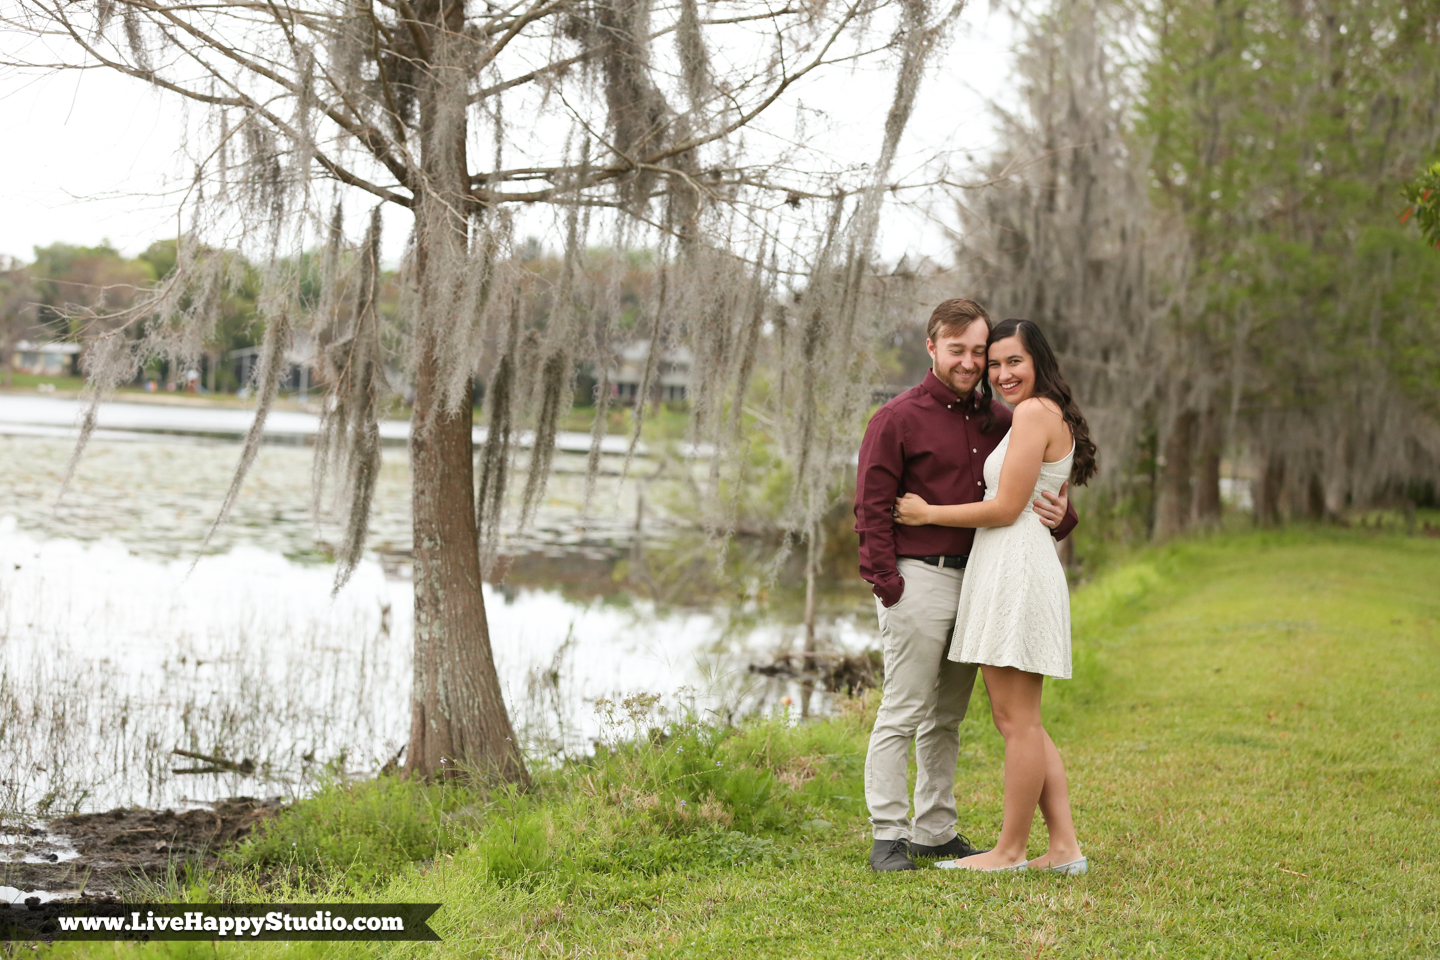 www.livehappystudio.com-cypress-grove-park-orlando-florida-engagement-photographer-candid-lake-nature9.jpg